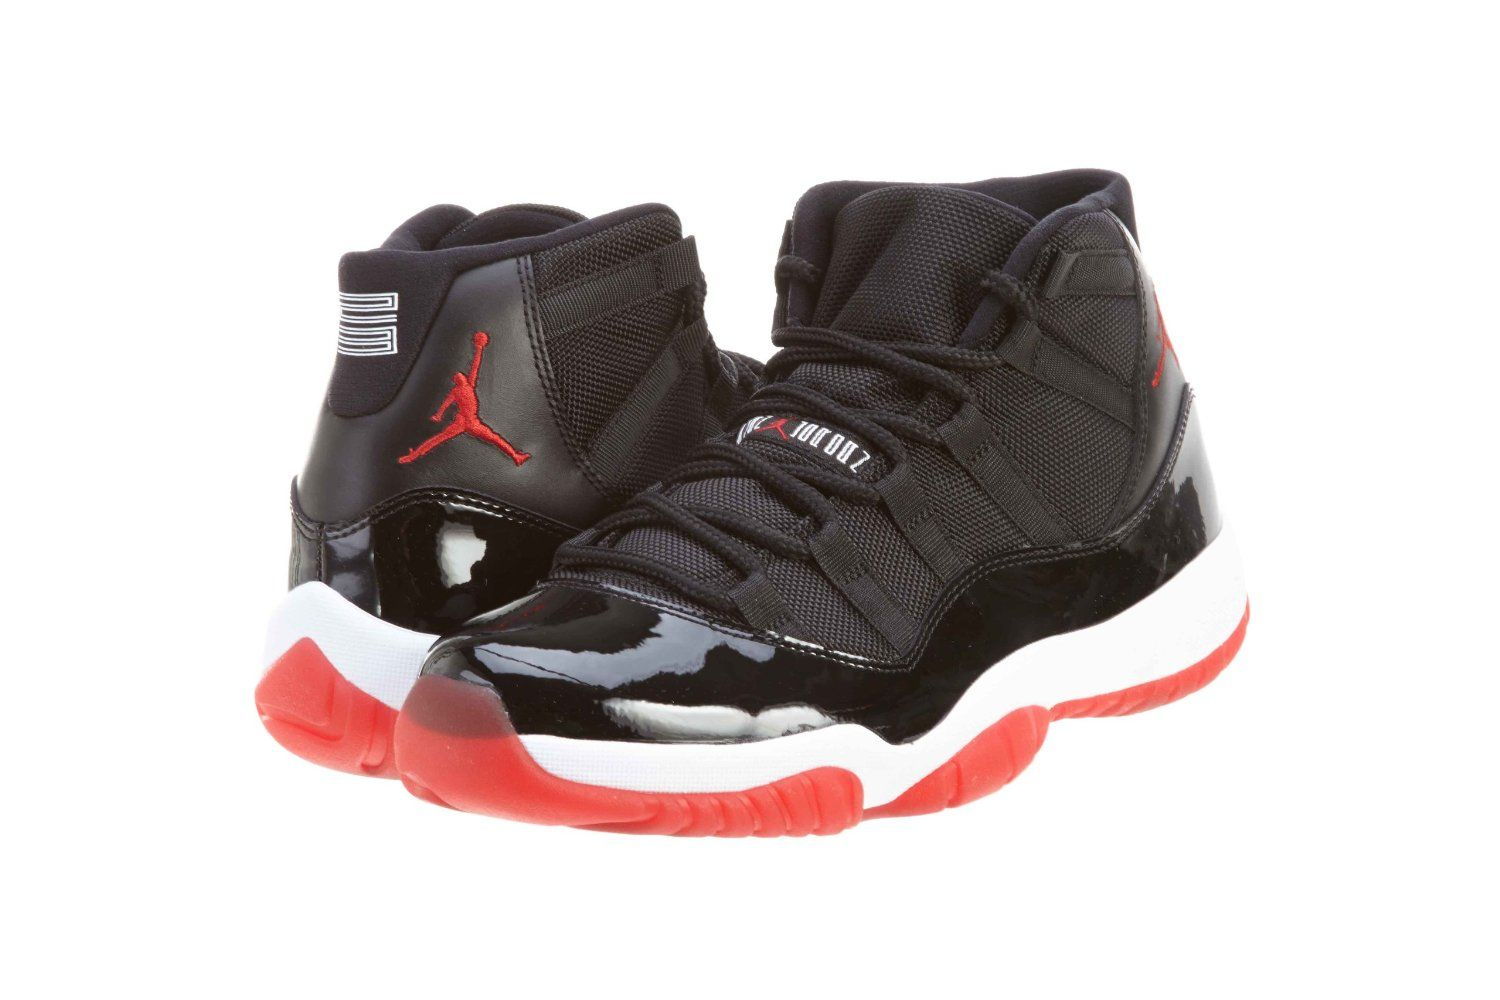 Air Jordan Made From Basketball Leather | Department of